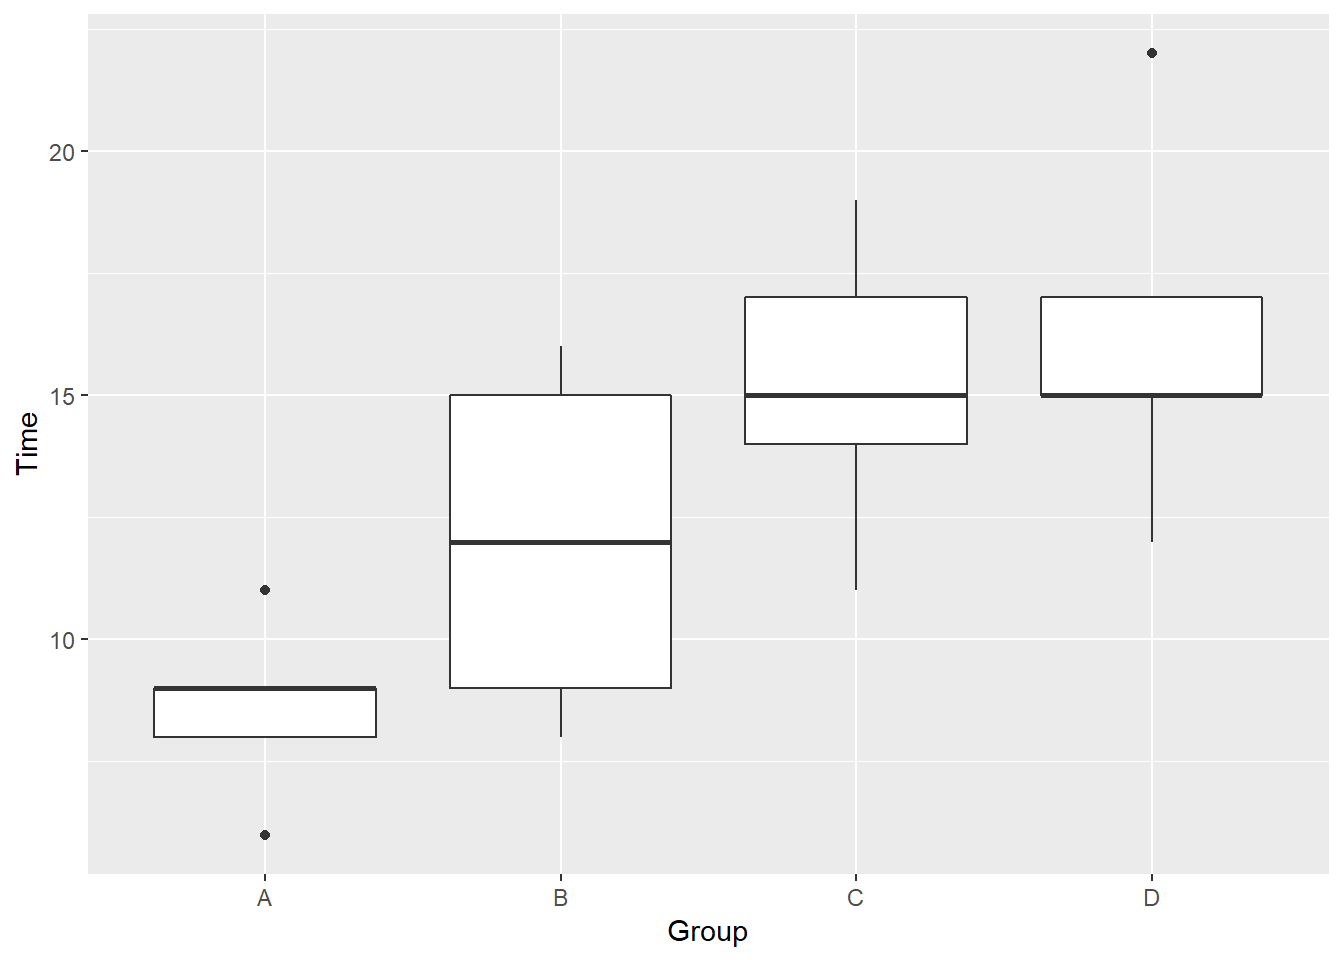 Box plot of pasta cooktime by type